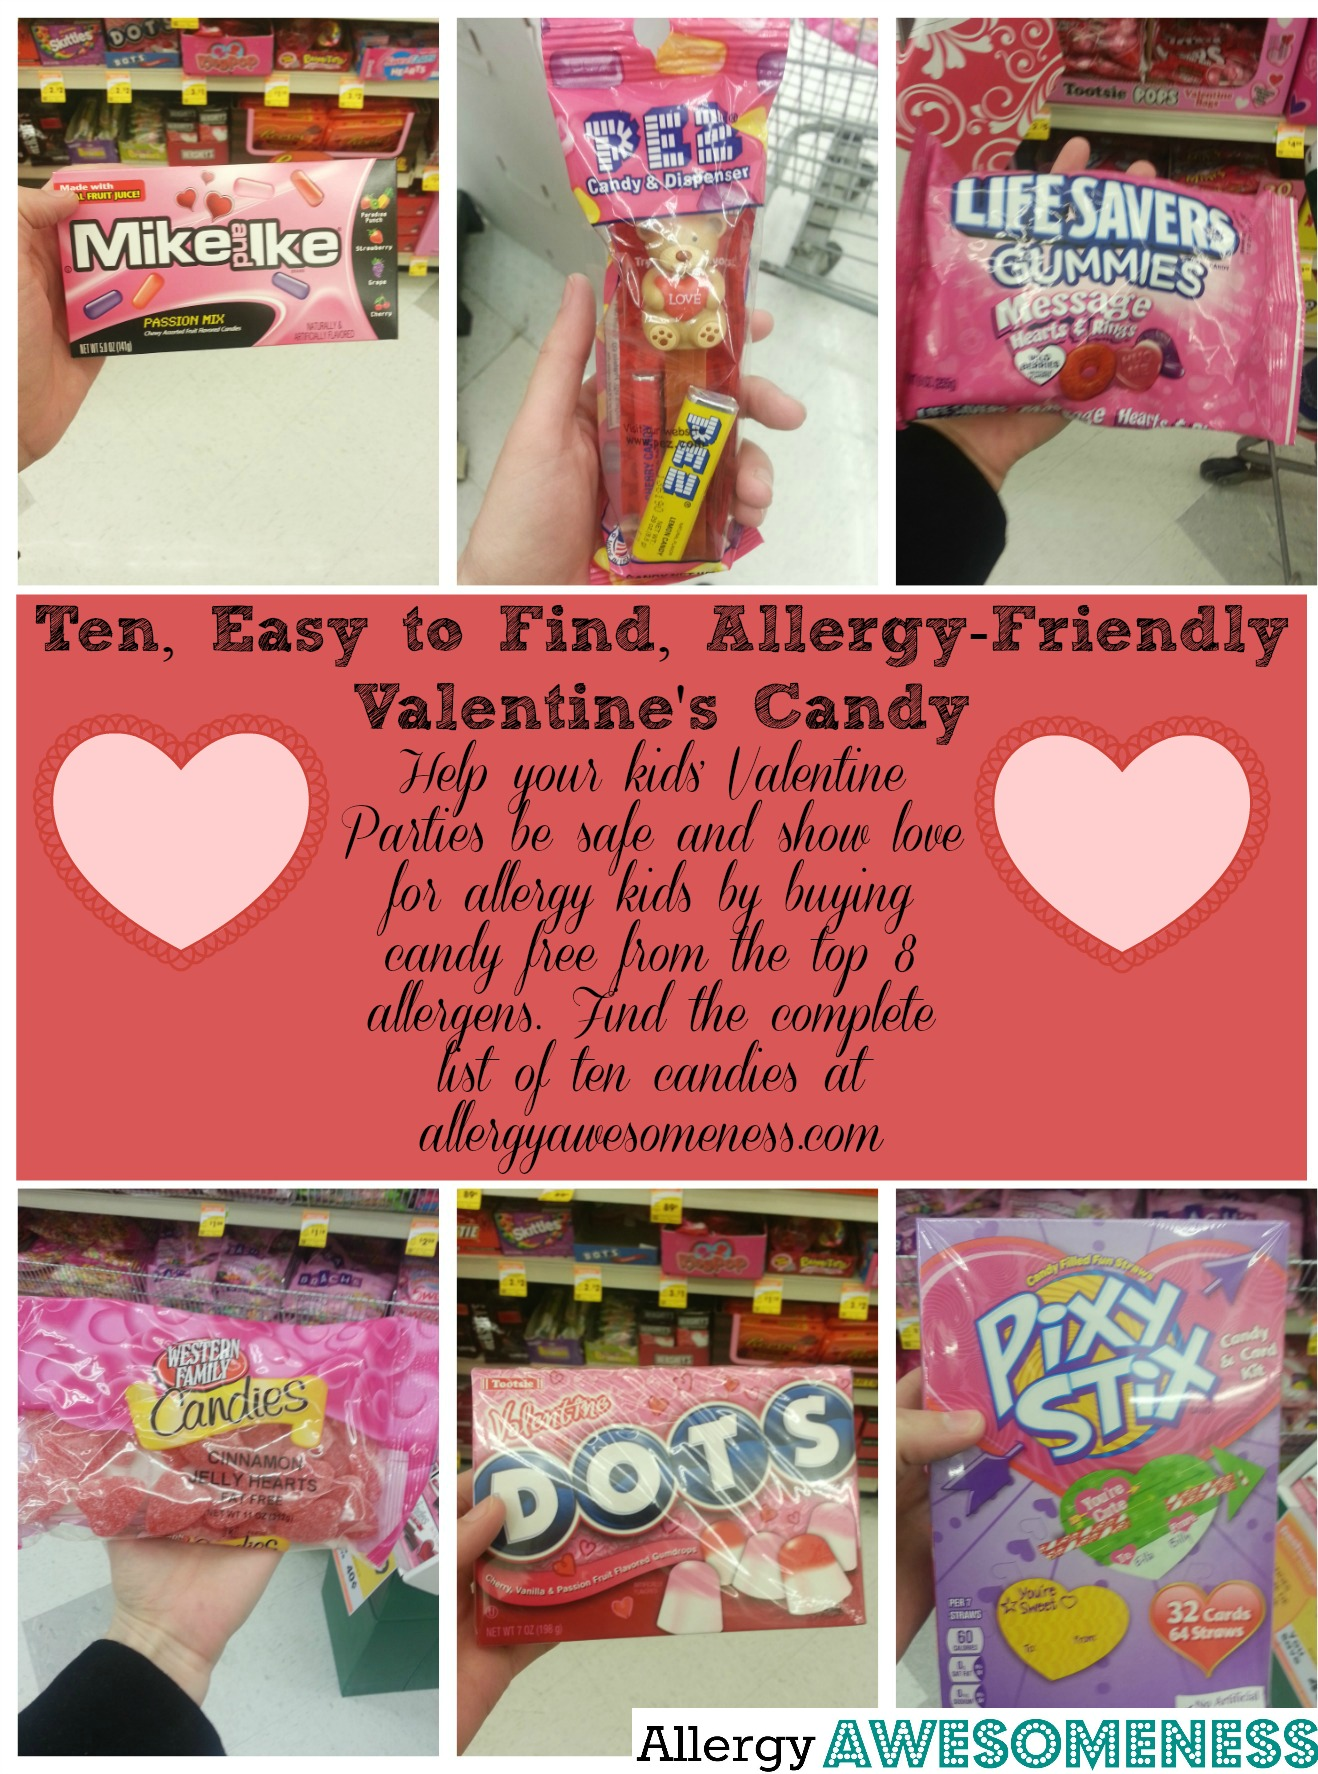 Food Allergy Friendly Candies For Valentines Day By Awesomeness